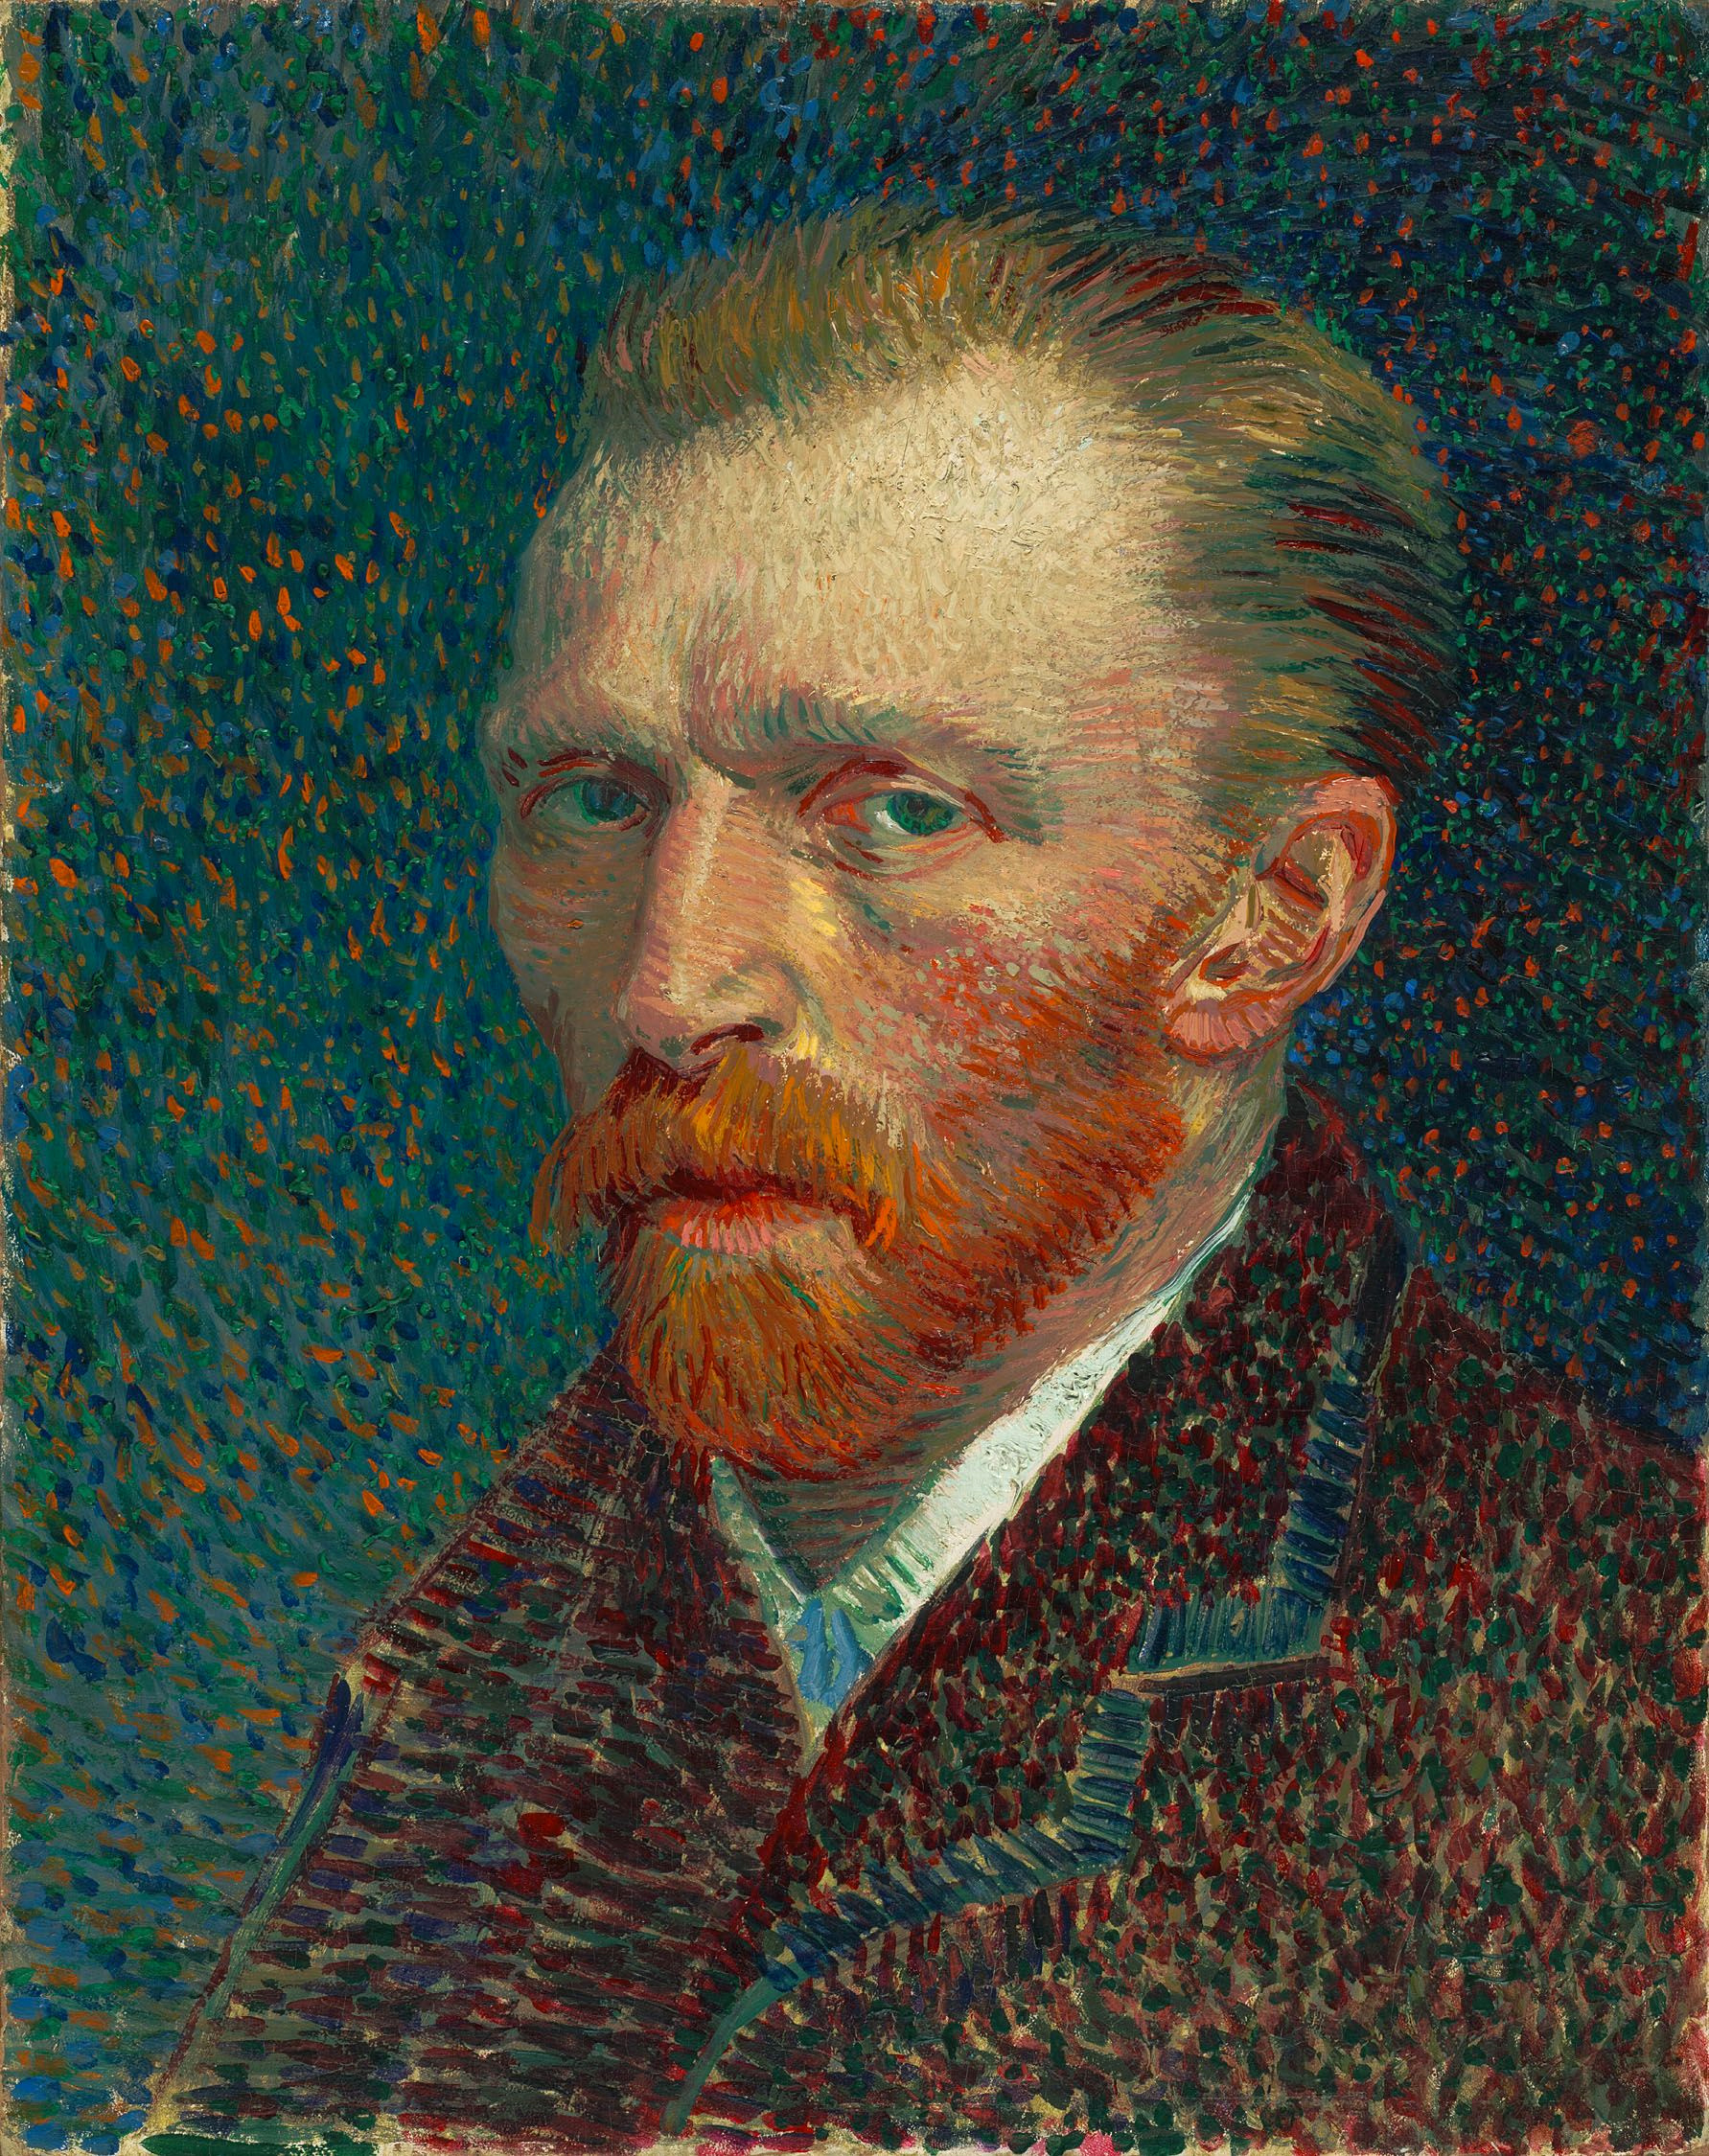 https://i2.wp.com/upload.wikimedia.org/wikipedia/commons/3/38/VanGogh_1887_Selbstbildnis.jpg